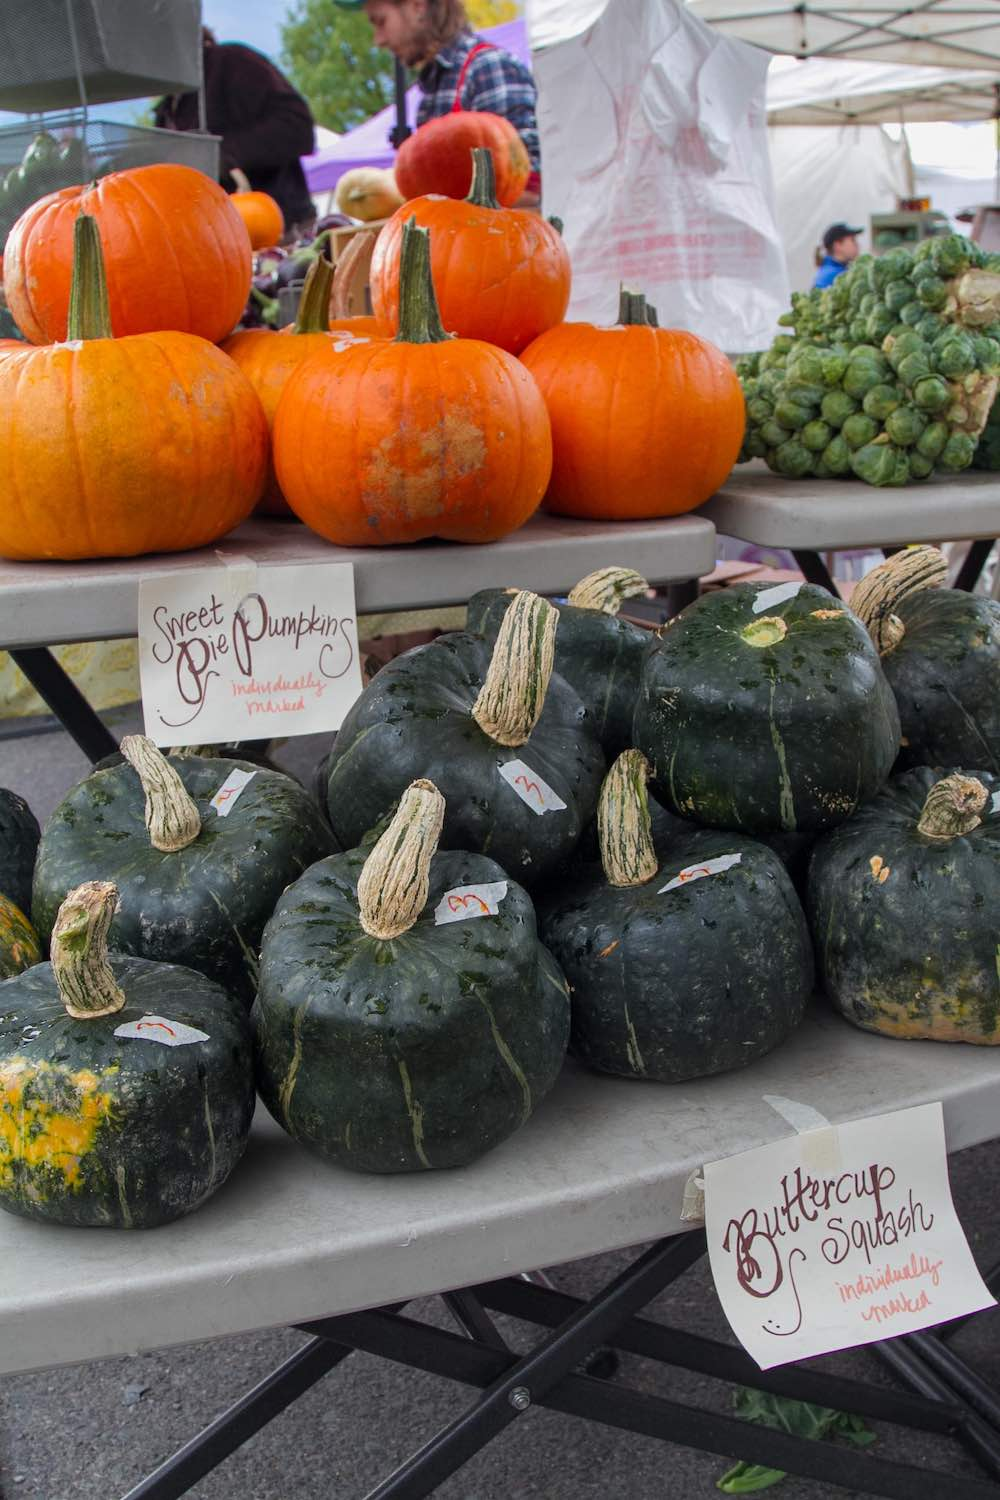 Fall pumpkins and buttercup squash at the Missoula Farmers Markets